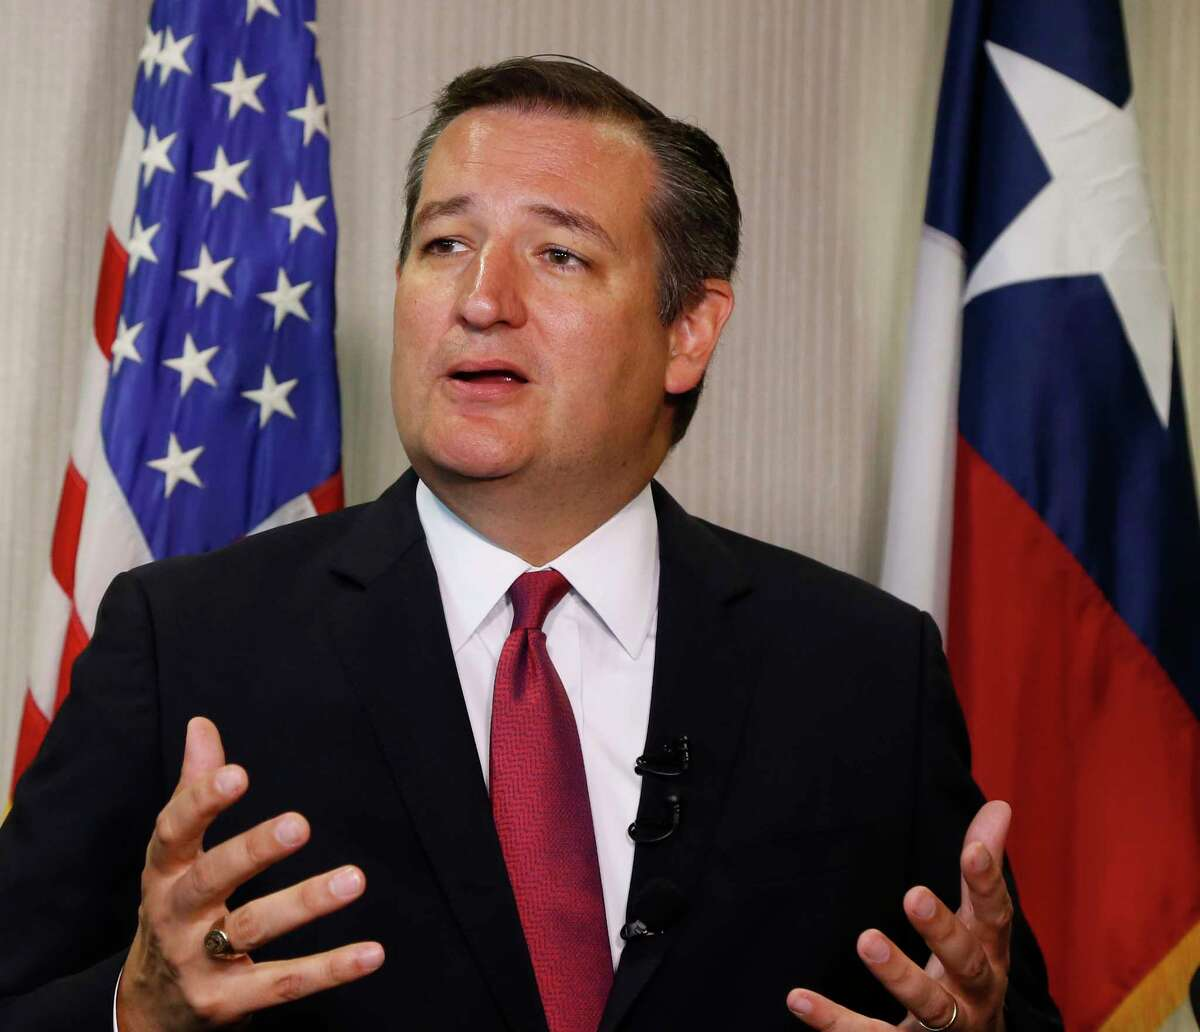 Ted Cruz address the media before speaking at a congressional series luncheon at the Marriott Riverwalk on Monday, August 20, 2017